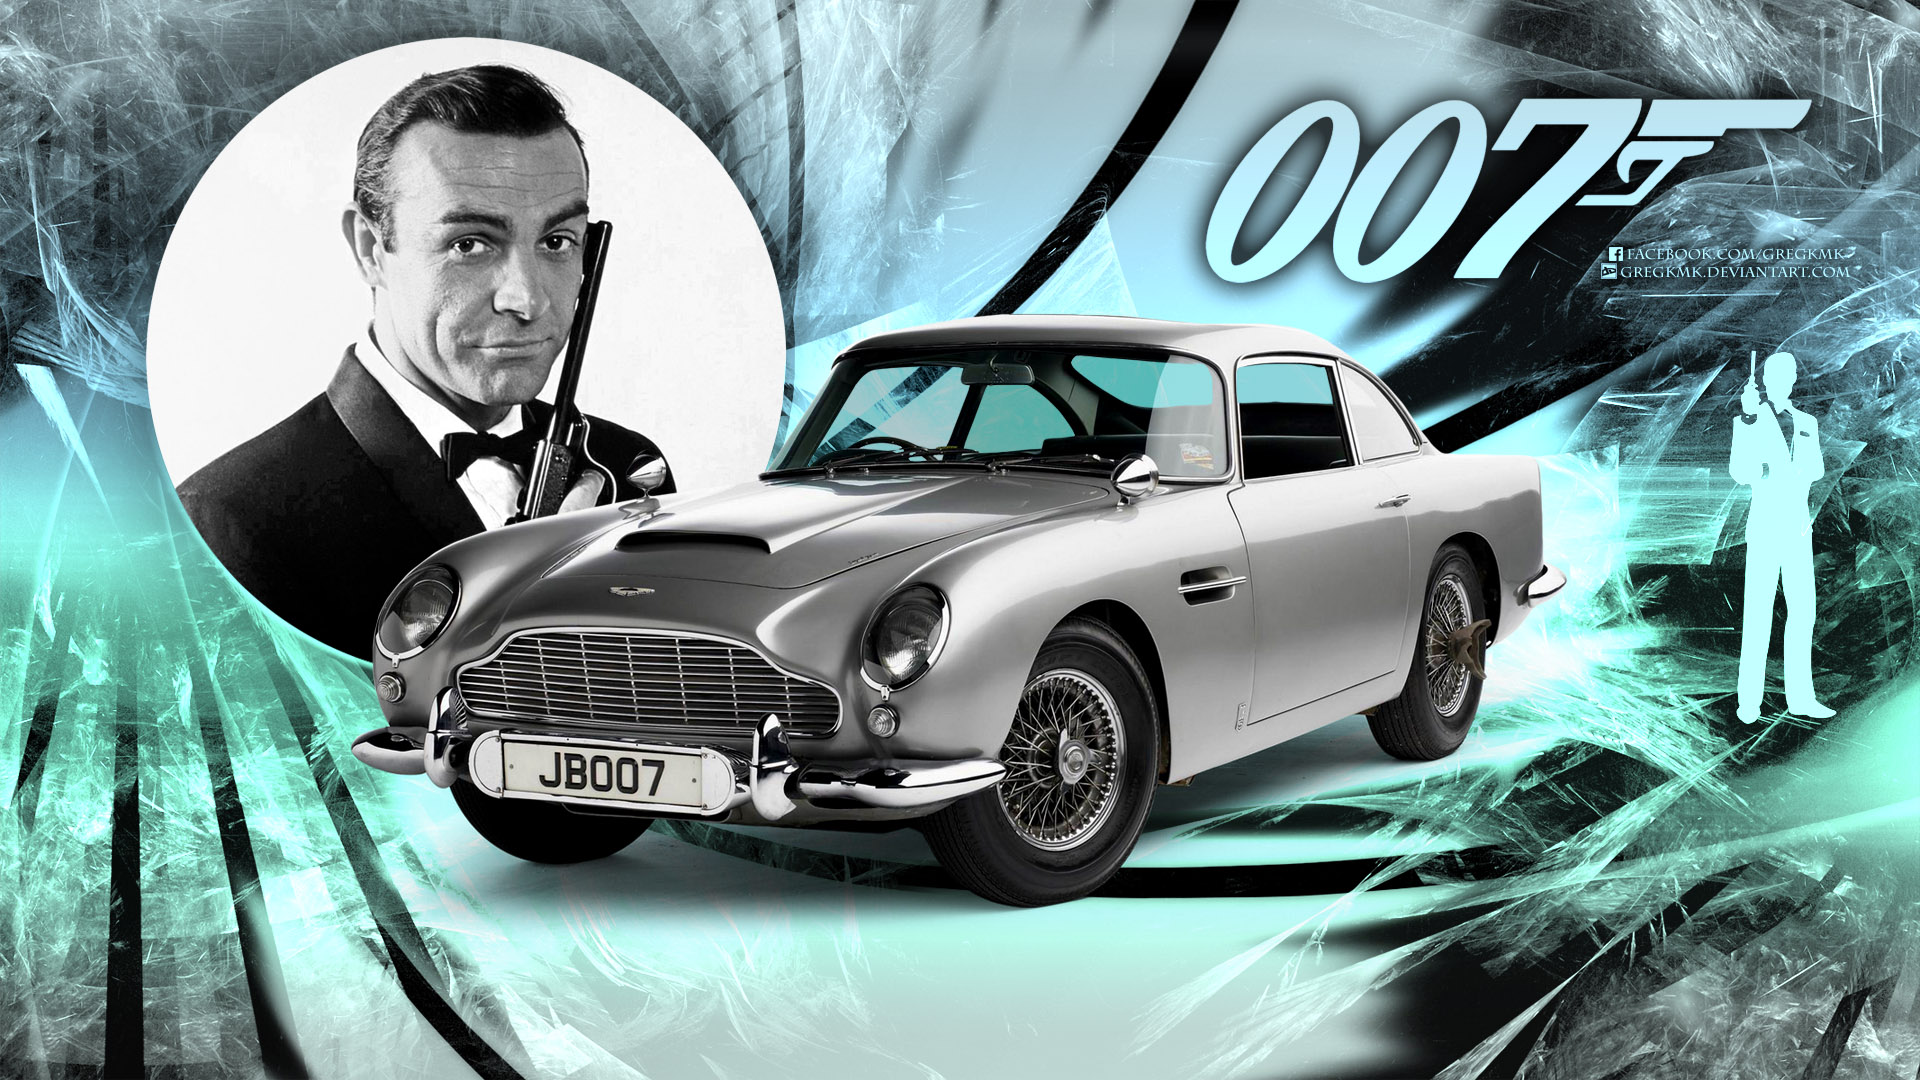 stamps and wallpapers on 007-club - deviantart